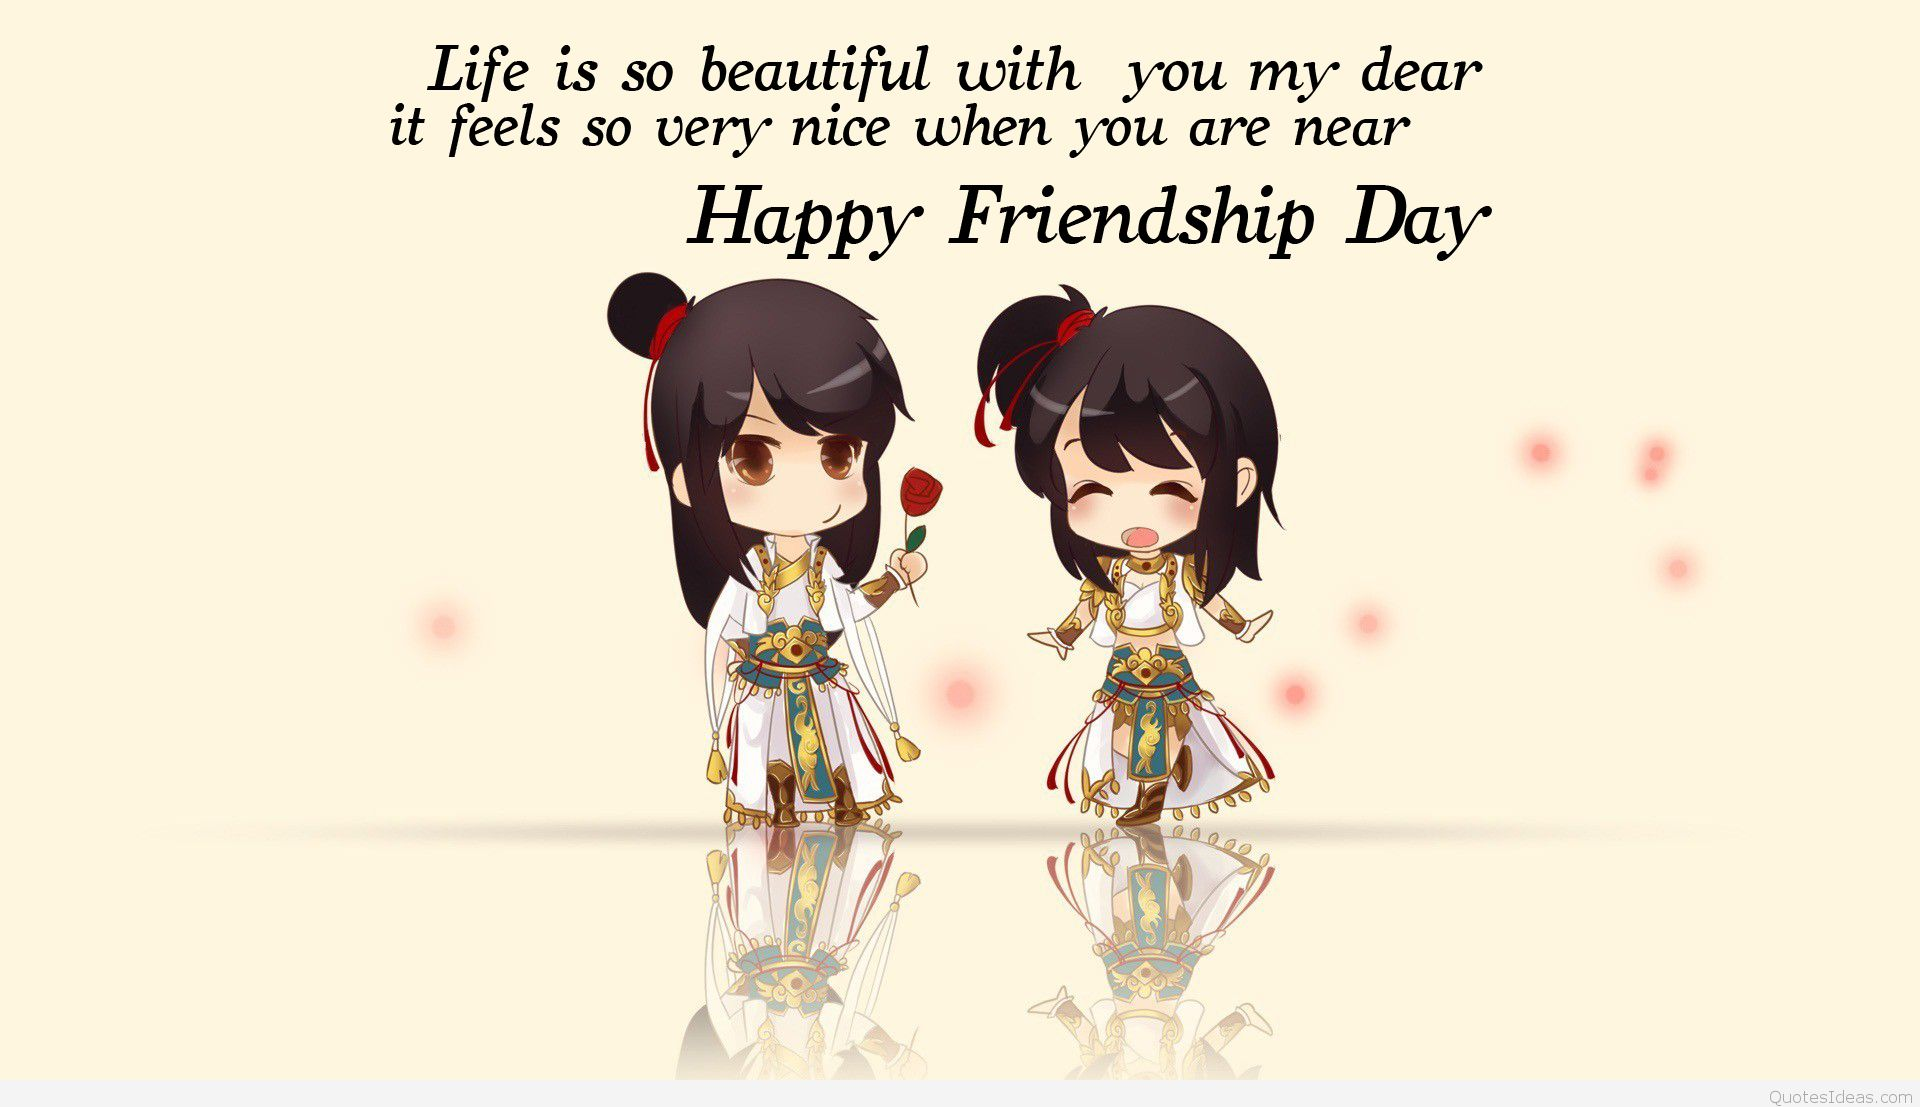 Happy Friendship Day Images 2019 With Quotes